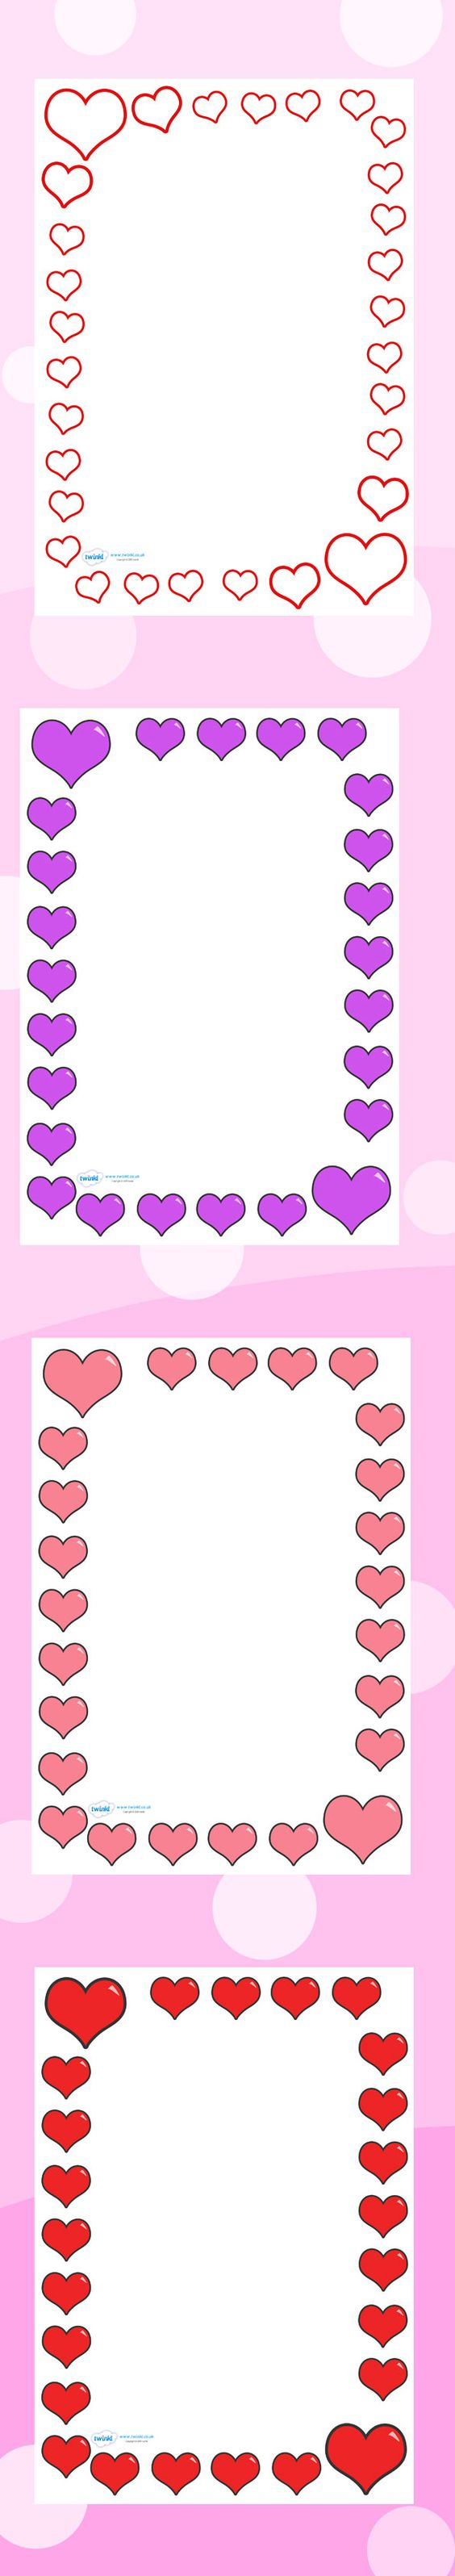 explore borders a4 borders letters and more love heart free printables ...